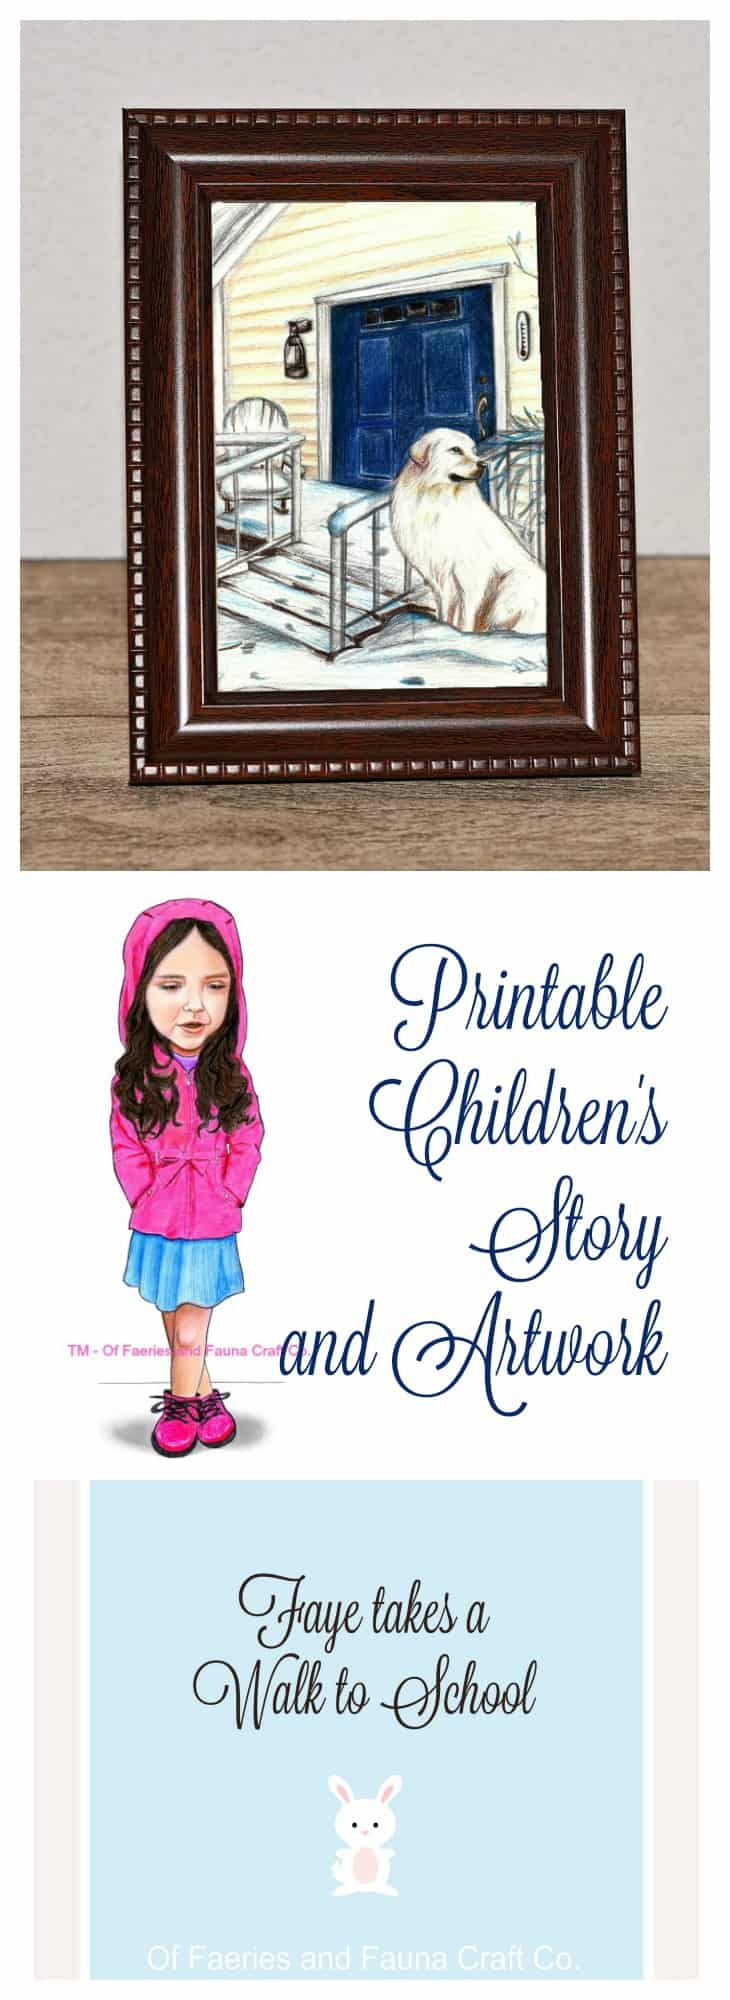 Childrens story, Printable for children.